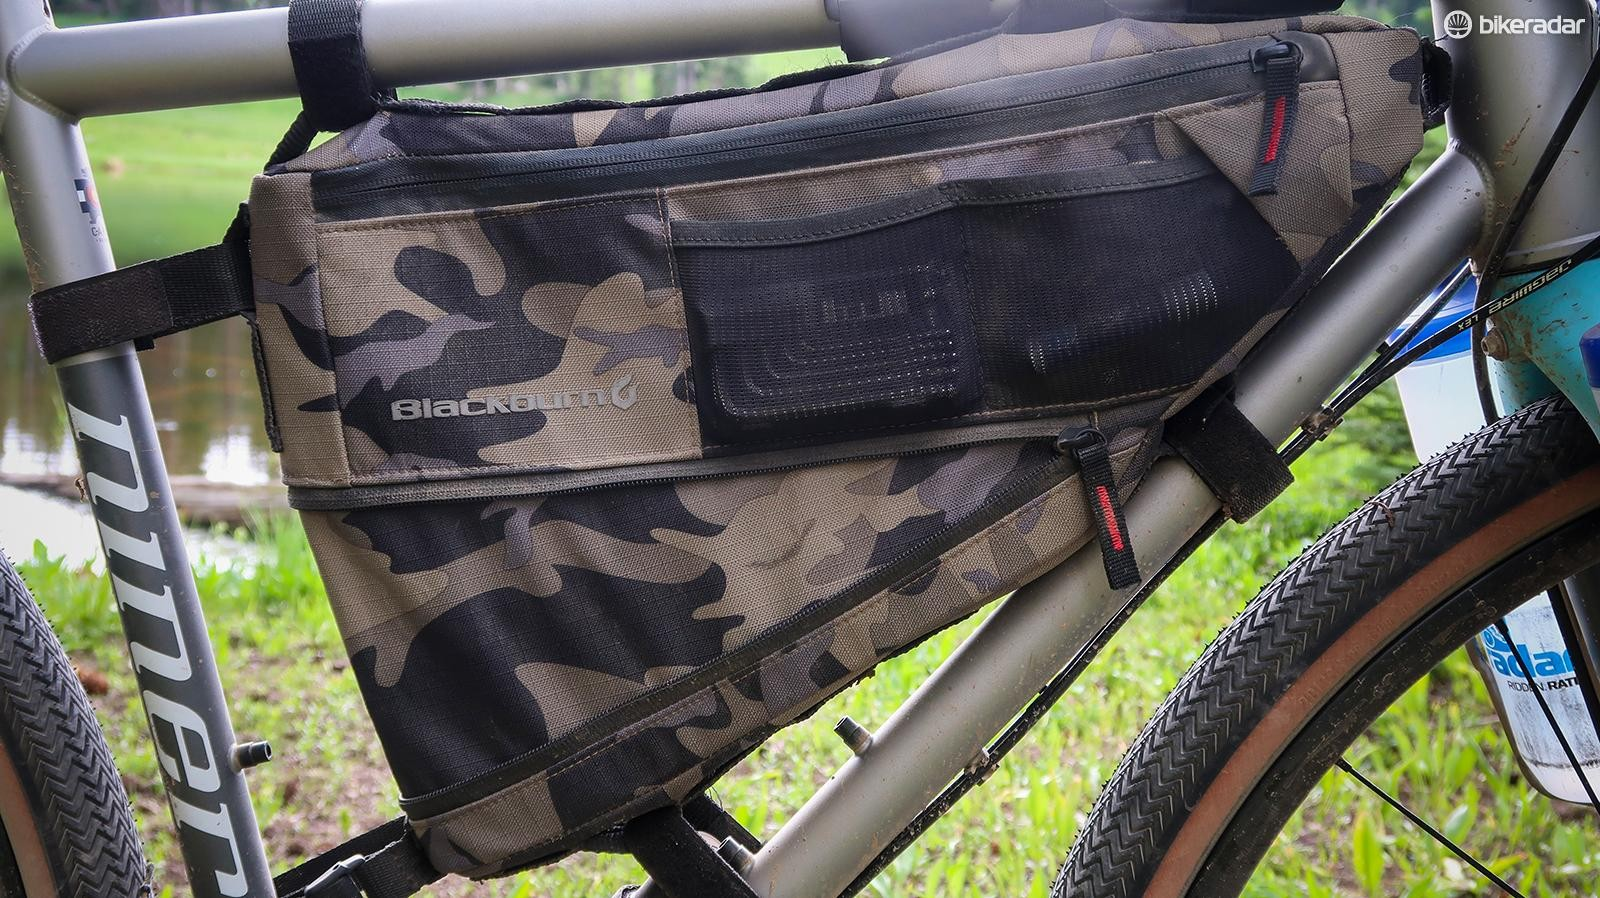 The Outpost frame bag is a good place to store food, water and other items you need to access while riding